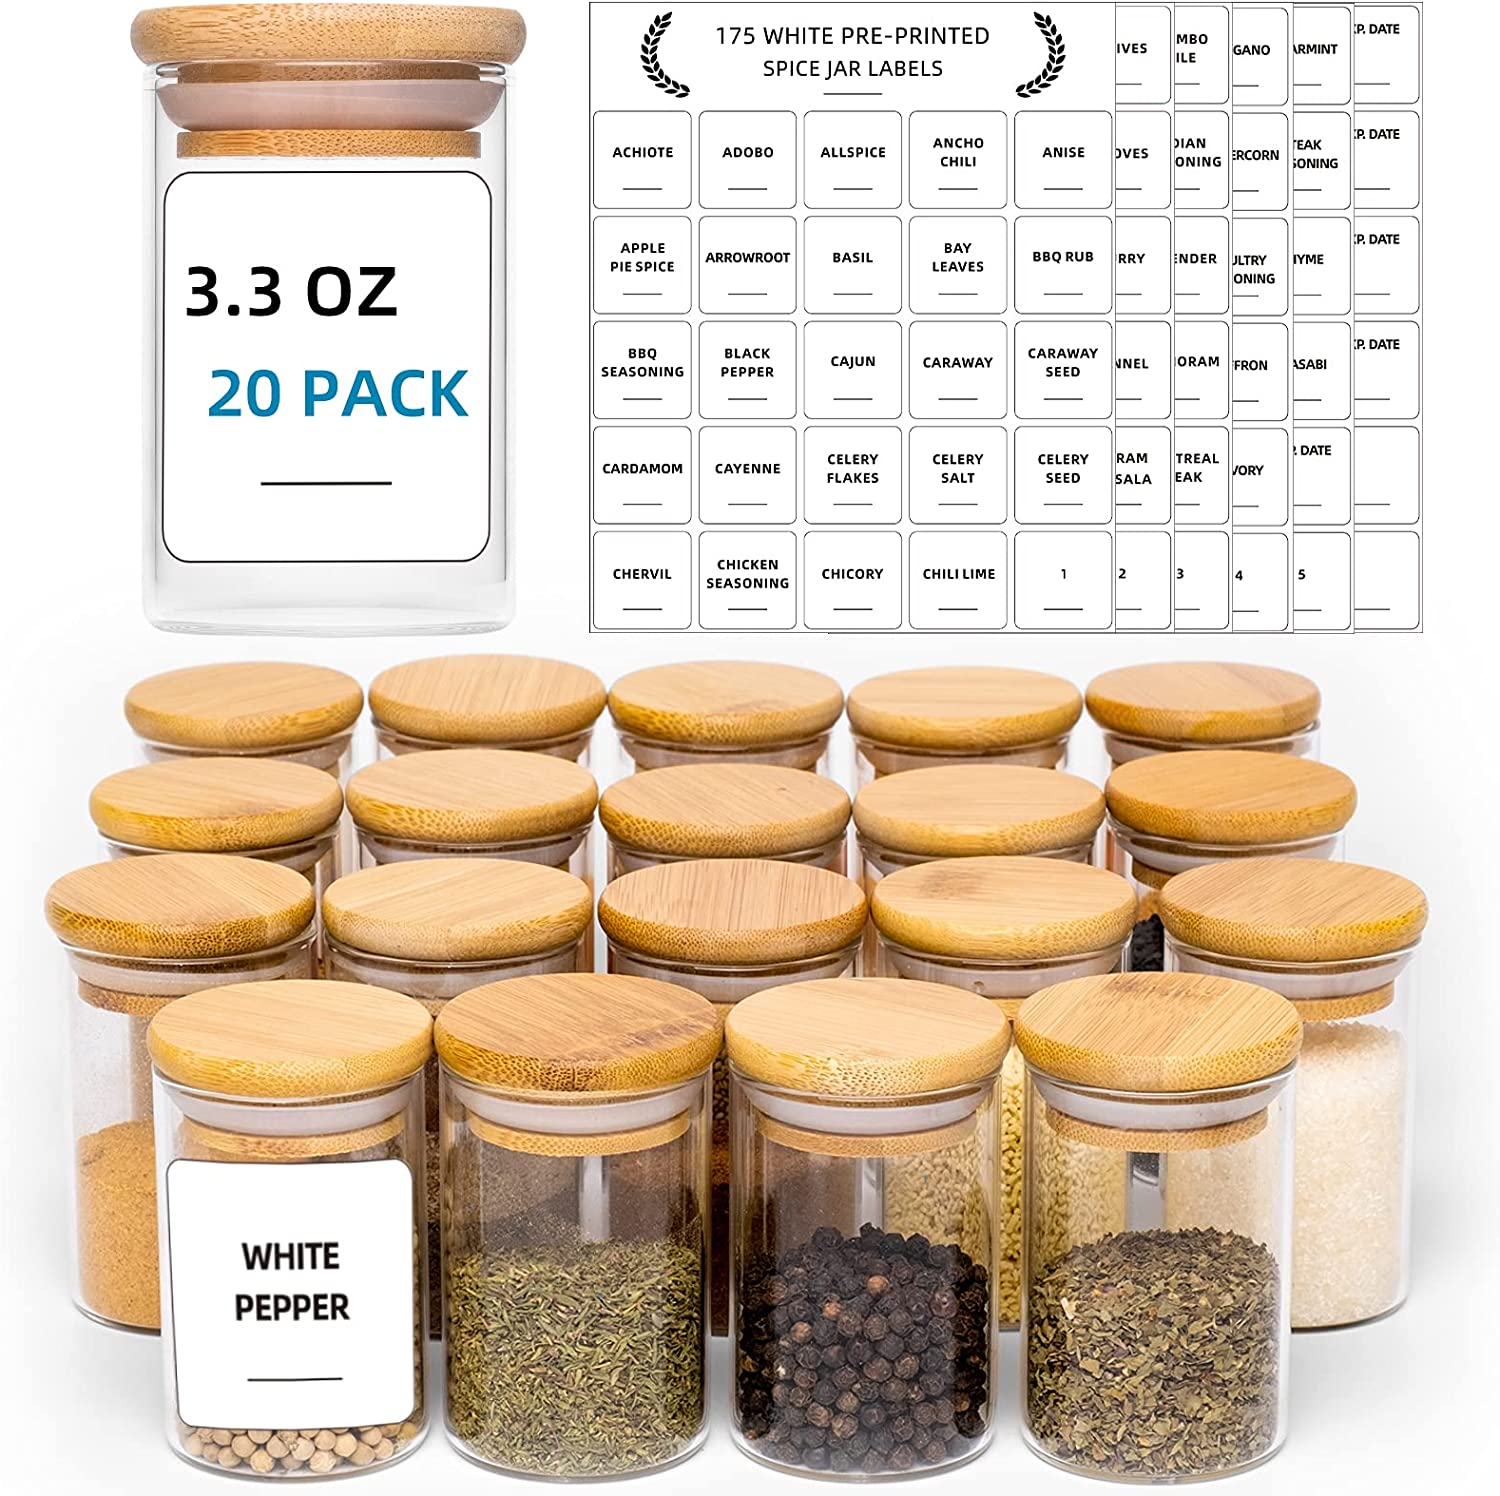 20 Al Cheap mail order specialty store sold out. Pcs Glass Spice Jars with White Labels fl Printed 3.3 -